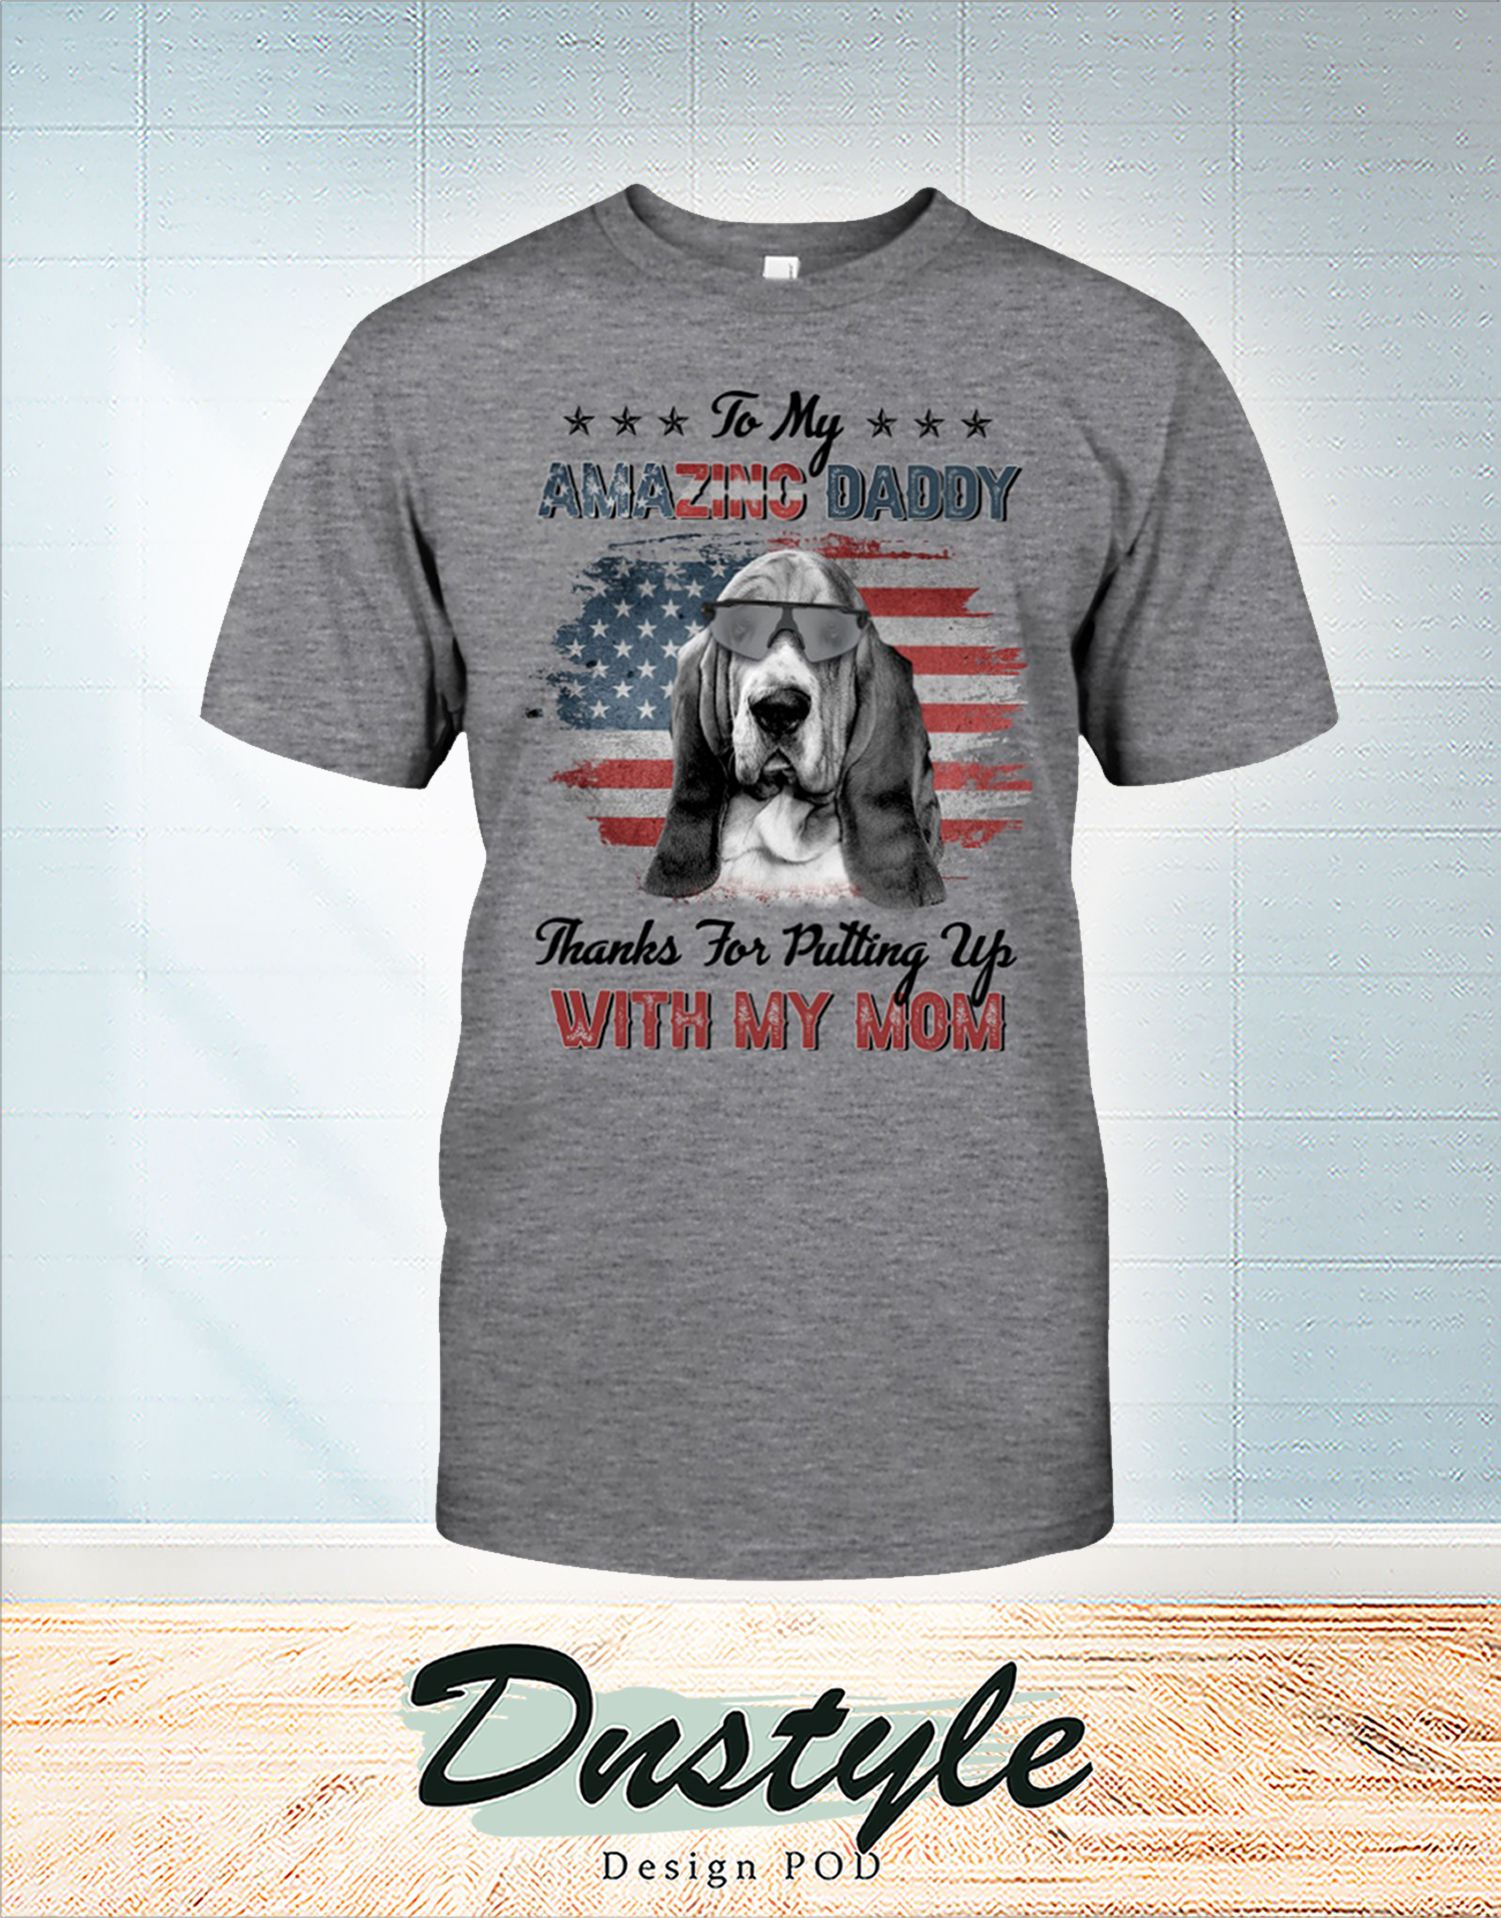 Basset hound to my amazing daddy thanks for putting up with my mom t-shirt